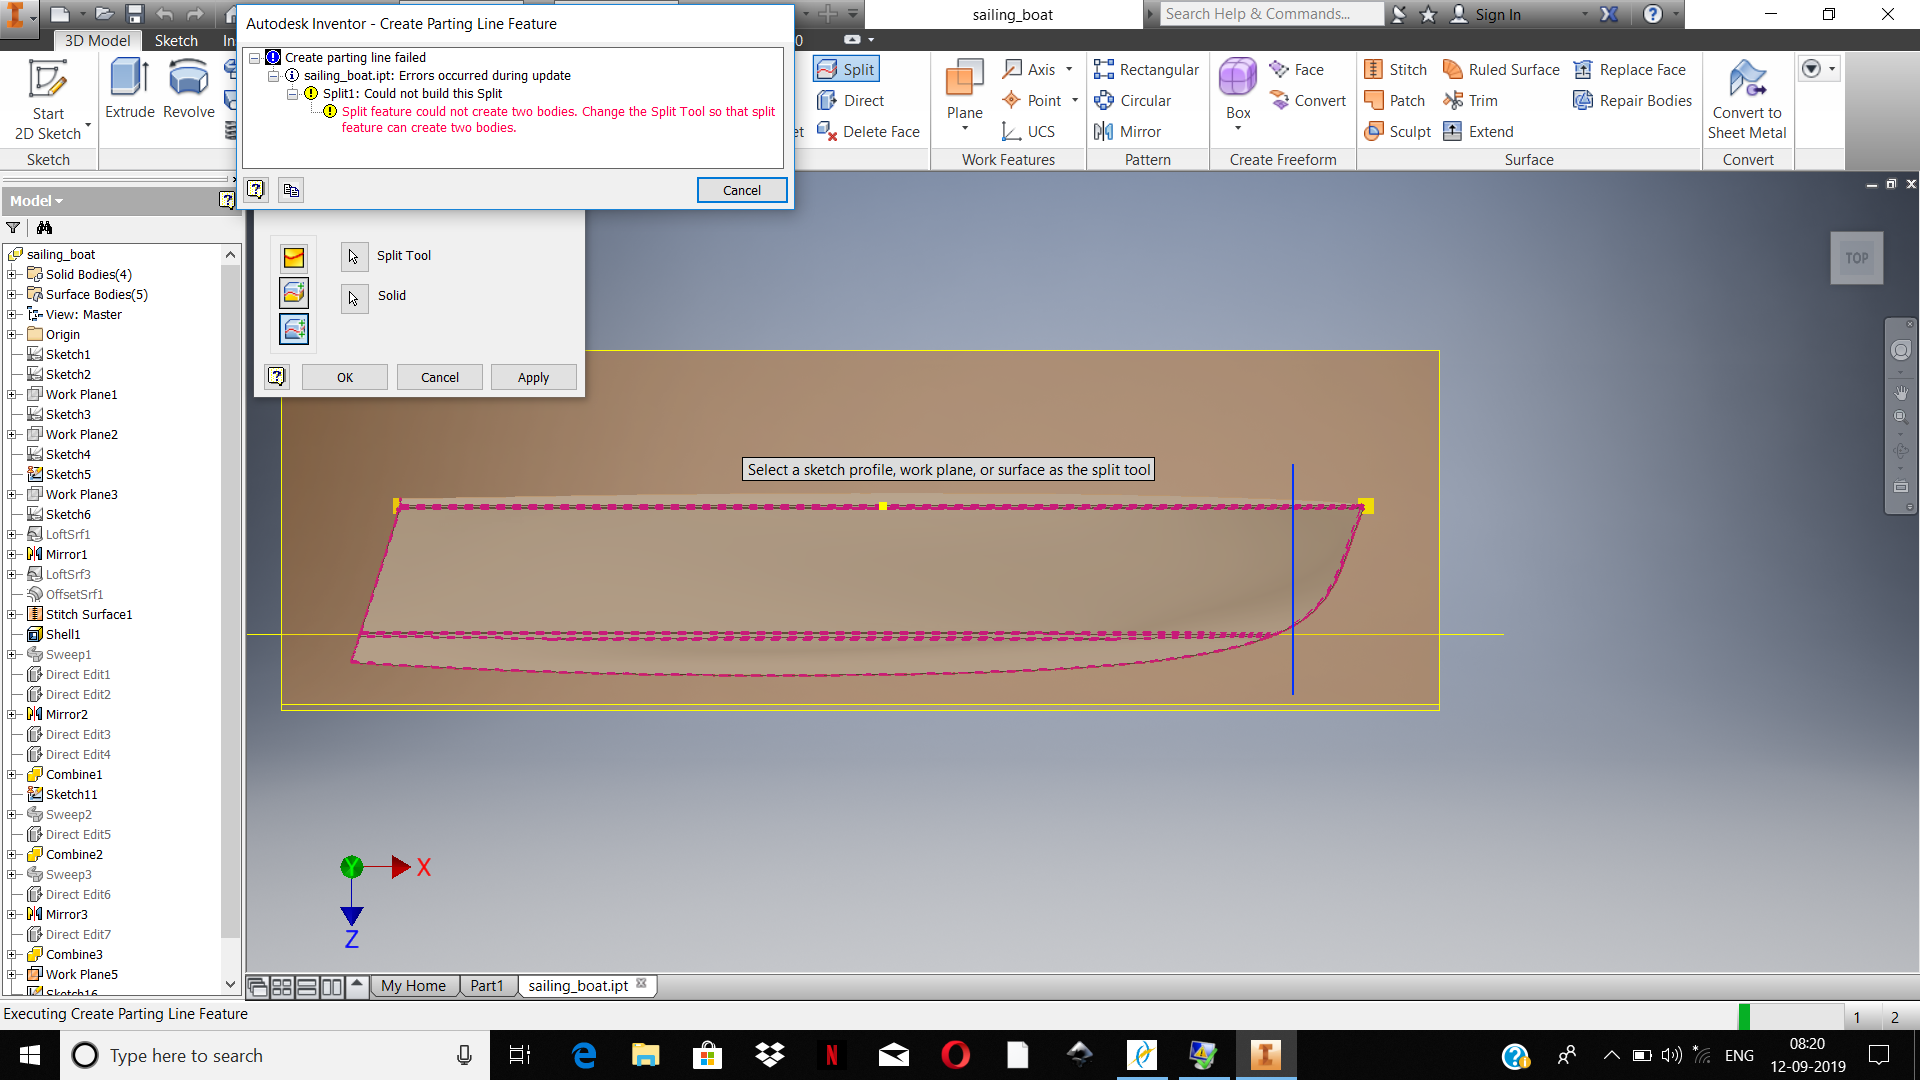 unable to split the boat hull into two part - Autodesk